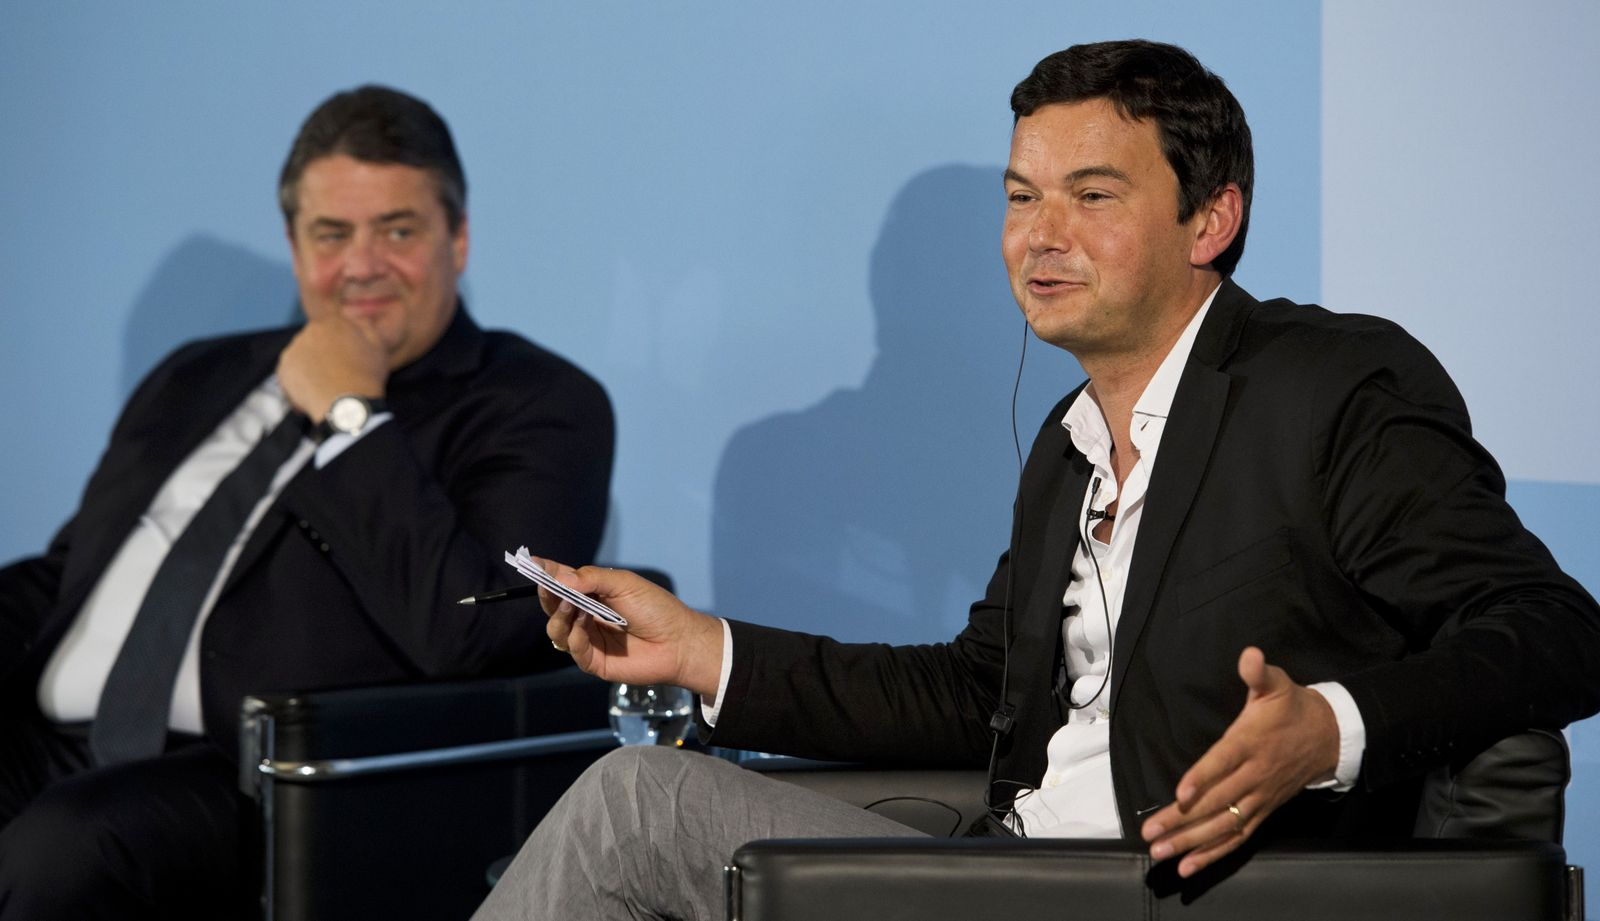 Sigmar Gabriel / Thomas Piketty